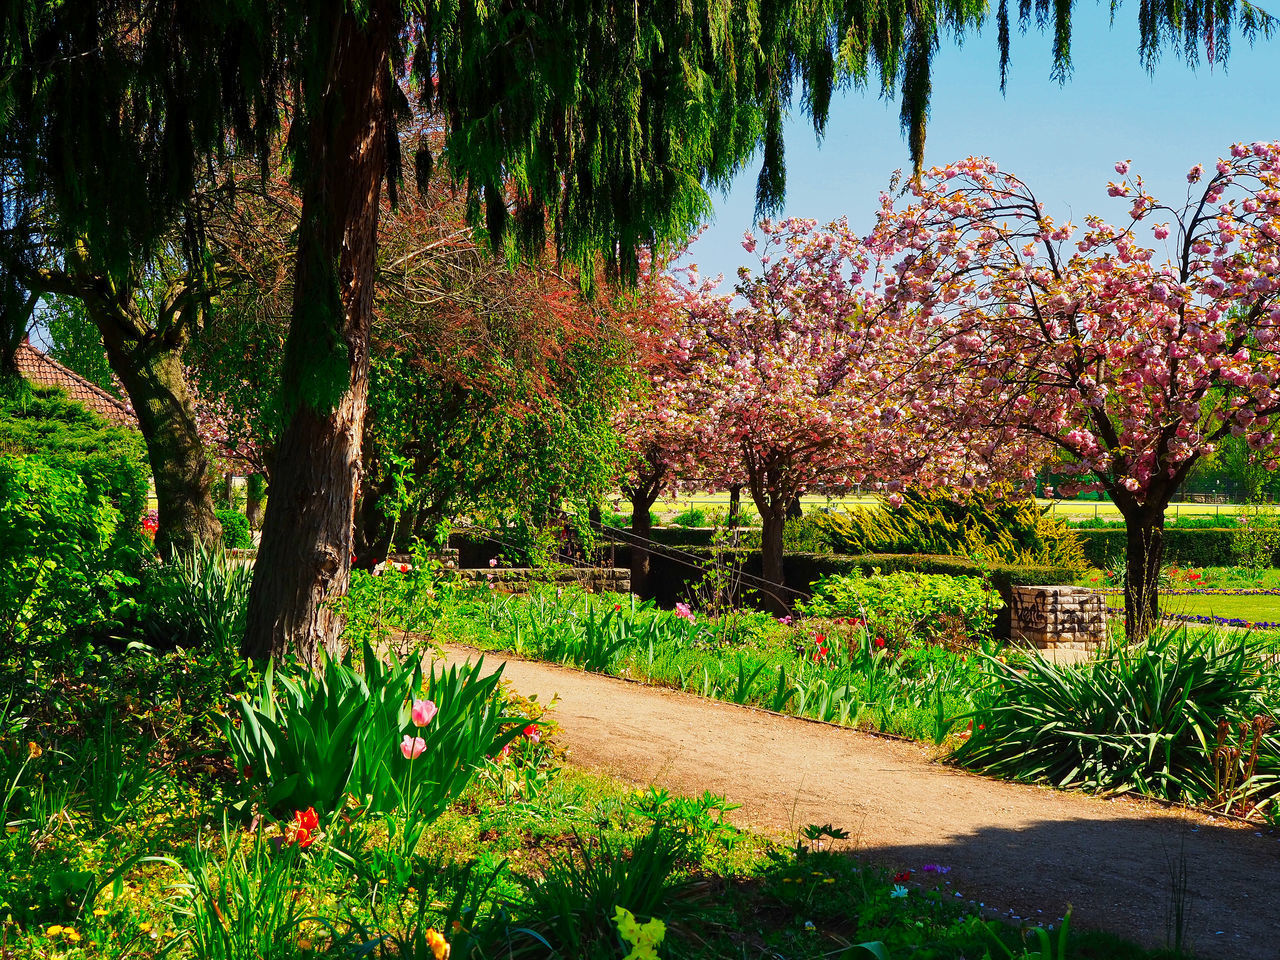 SCENIC VIEW OF FLOWERING PLANTS IN PARK